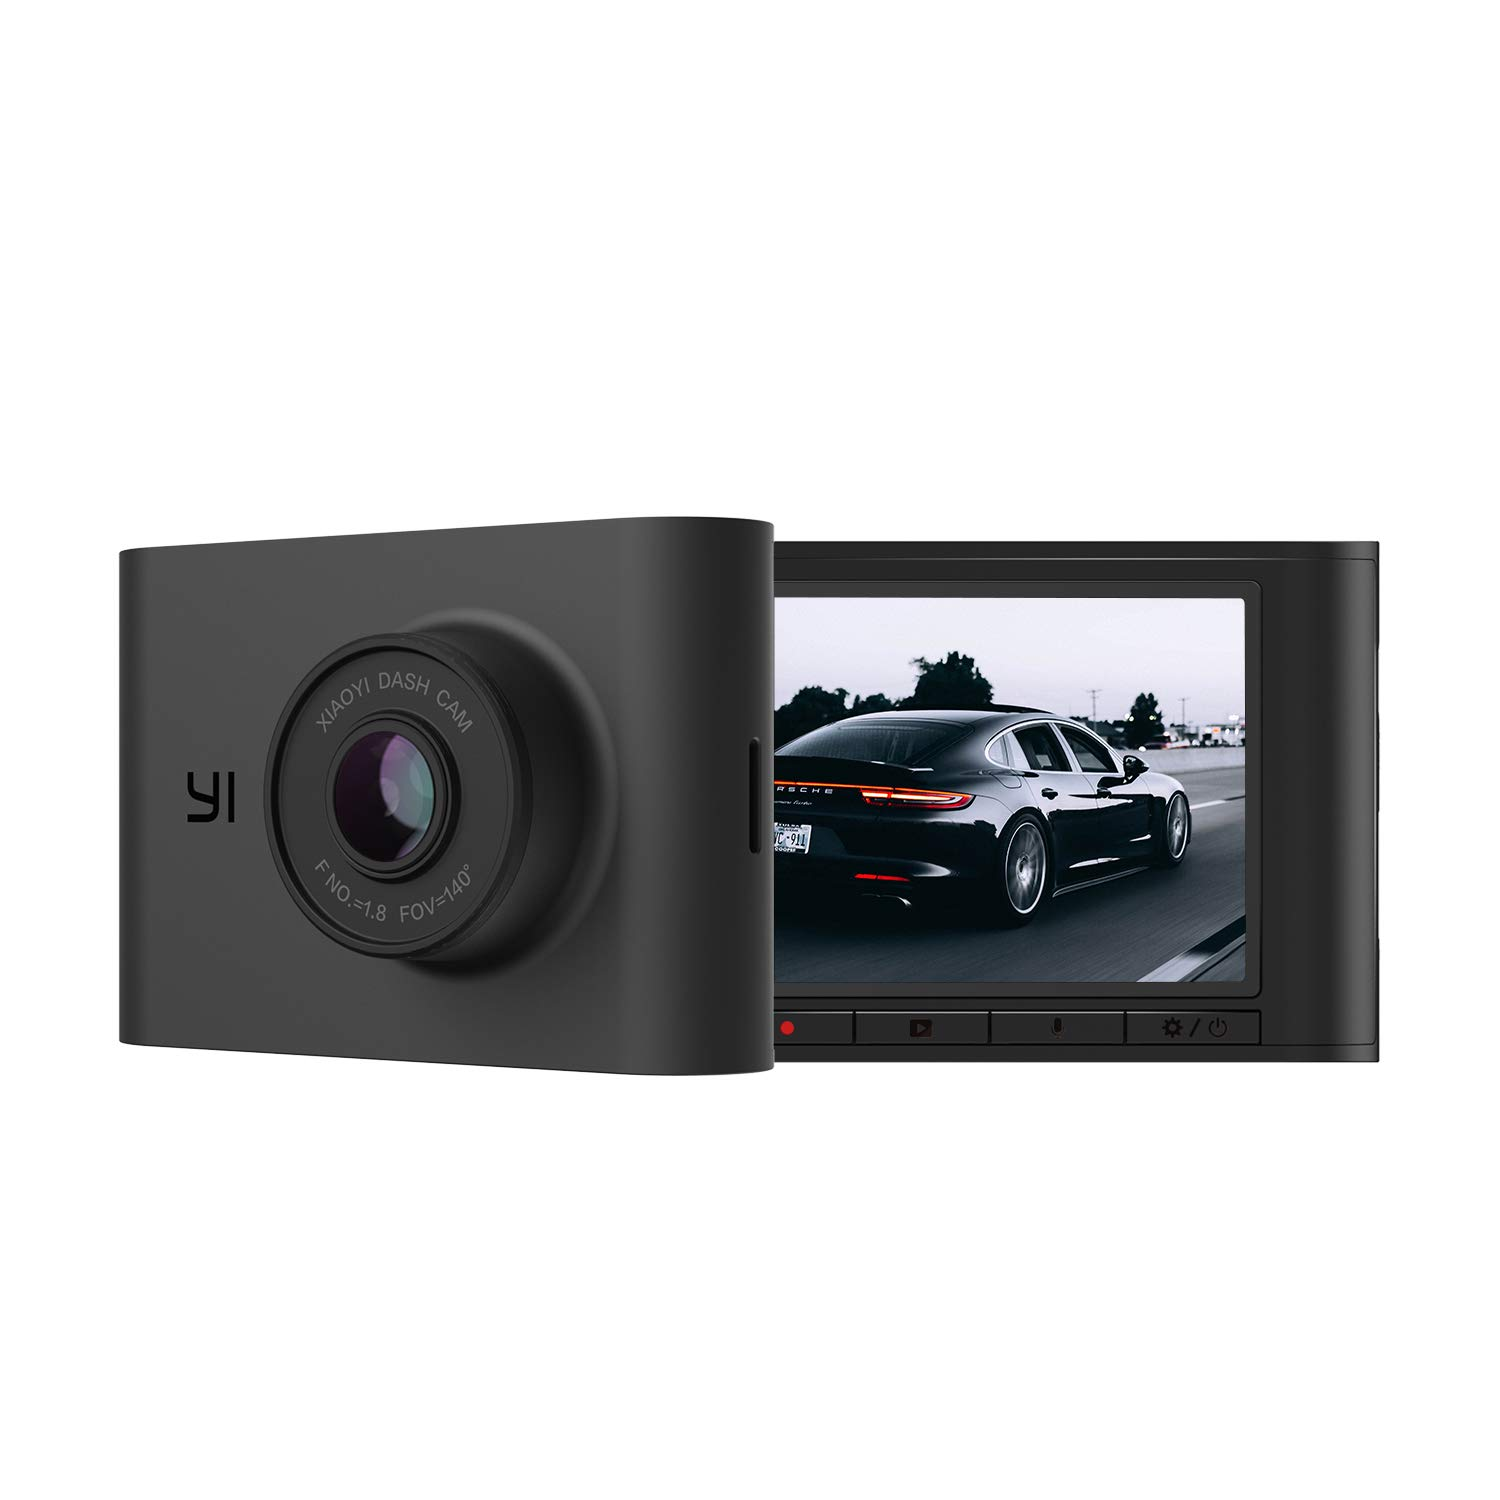 YI Nightscape Dash Cam, 1080p Smart Wi-Fi Car Camera with Heat-Resistant Supercapacitor, Superb Night Vision, Sony Sensor, 140° FOV, 2.4''Screen, Phone App - Black